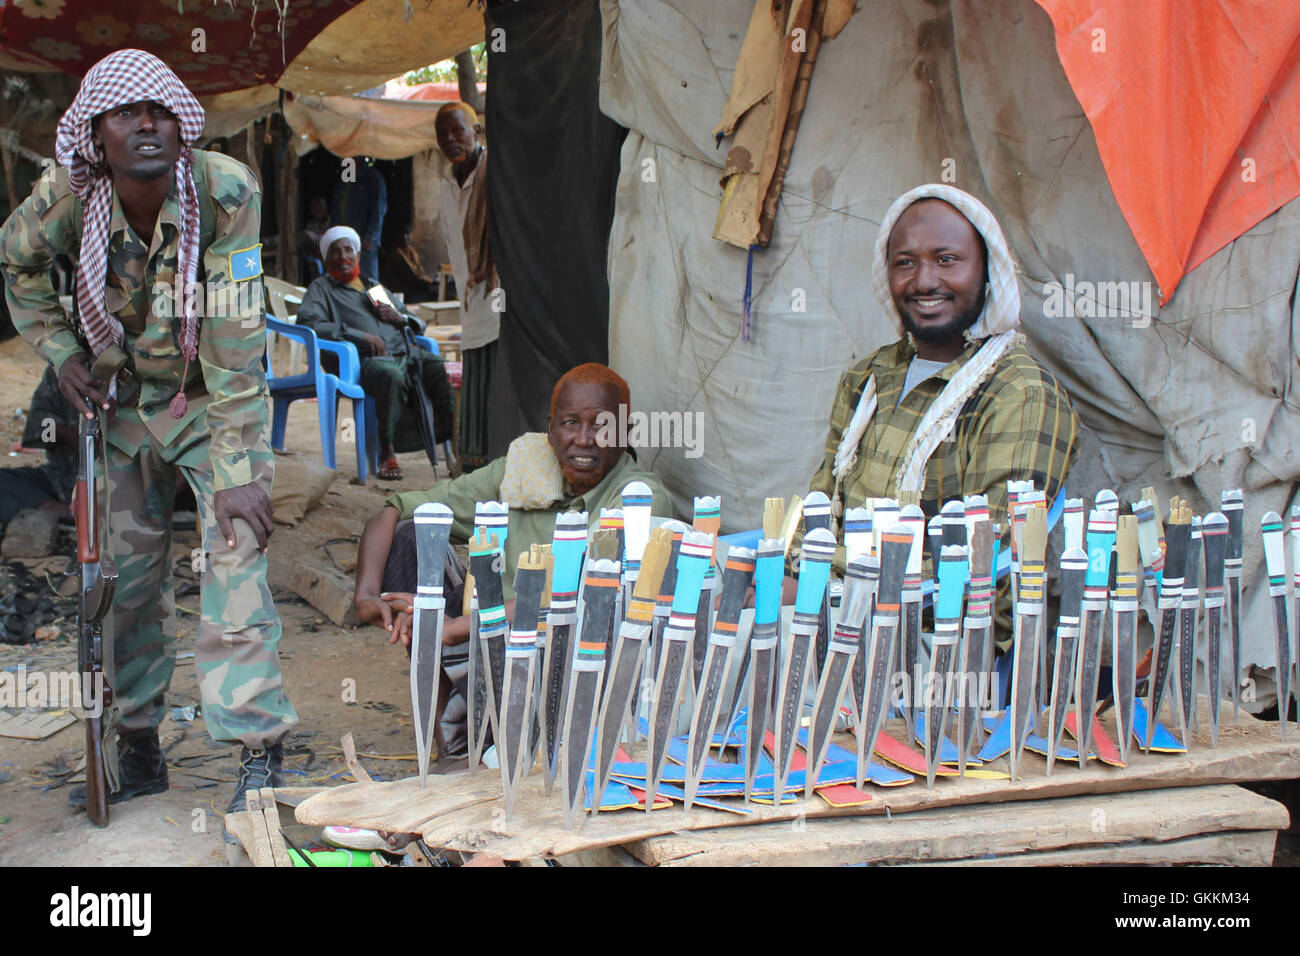 A man sells knives in Baardere market, Somalia. business activities have resumed after the town was captured from Stock Photo